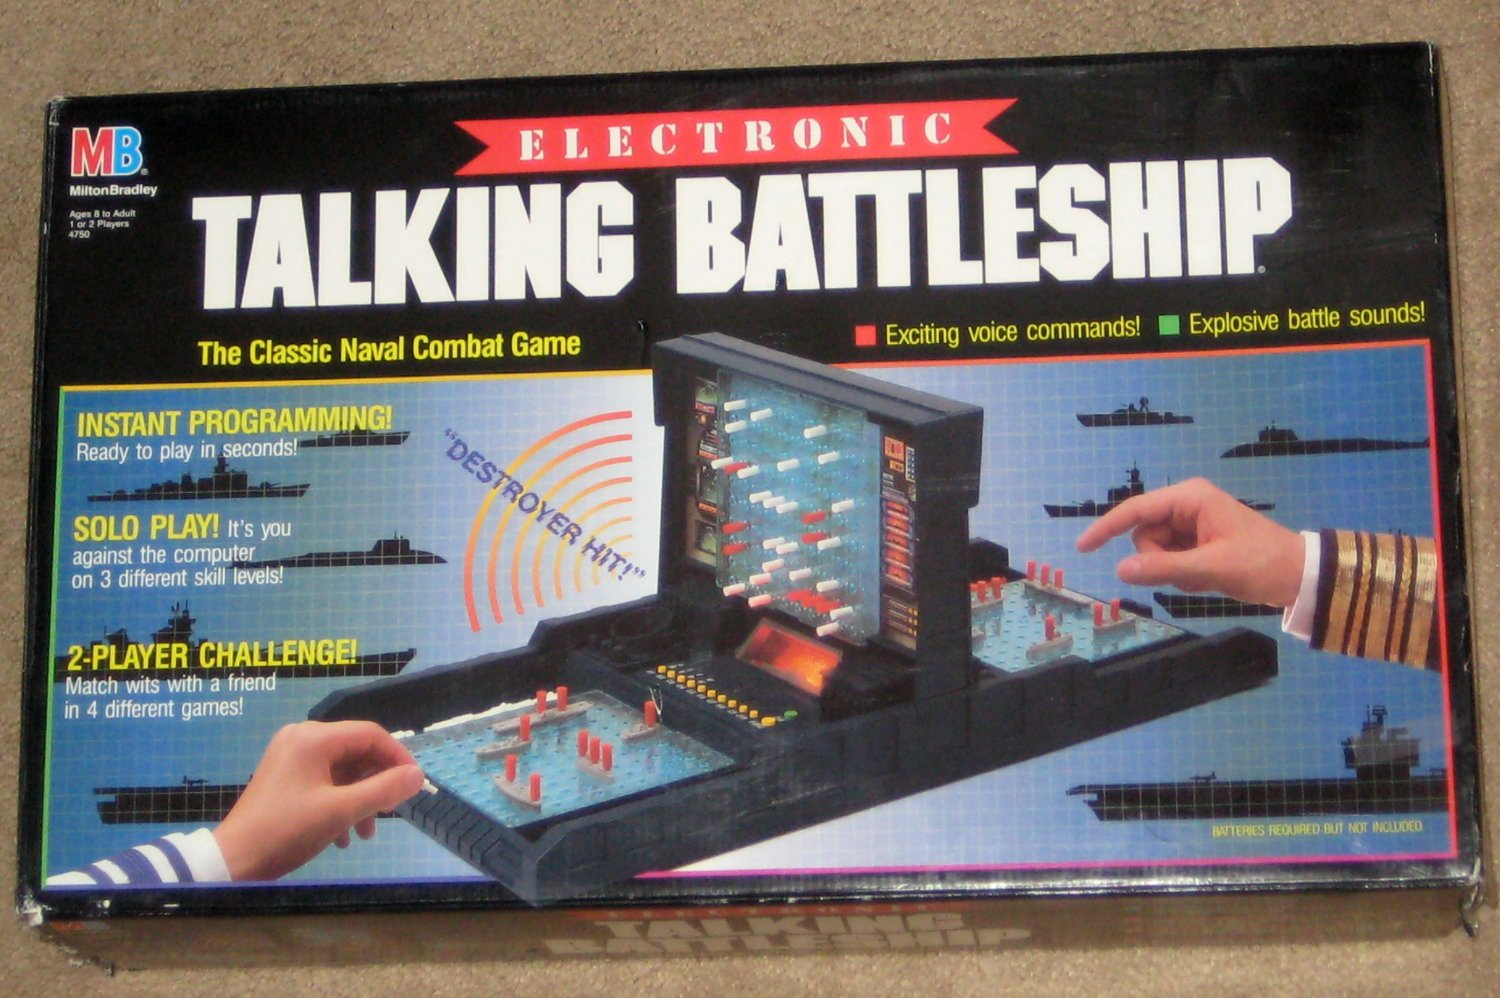 SOLD Open Box never Played Electronic Talking Battleship Game 1989 MB Milton Bradley 4750